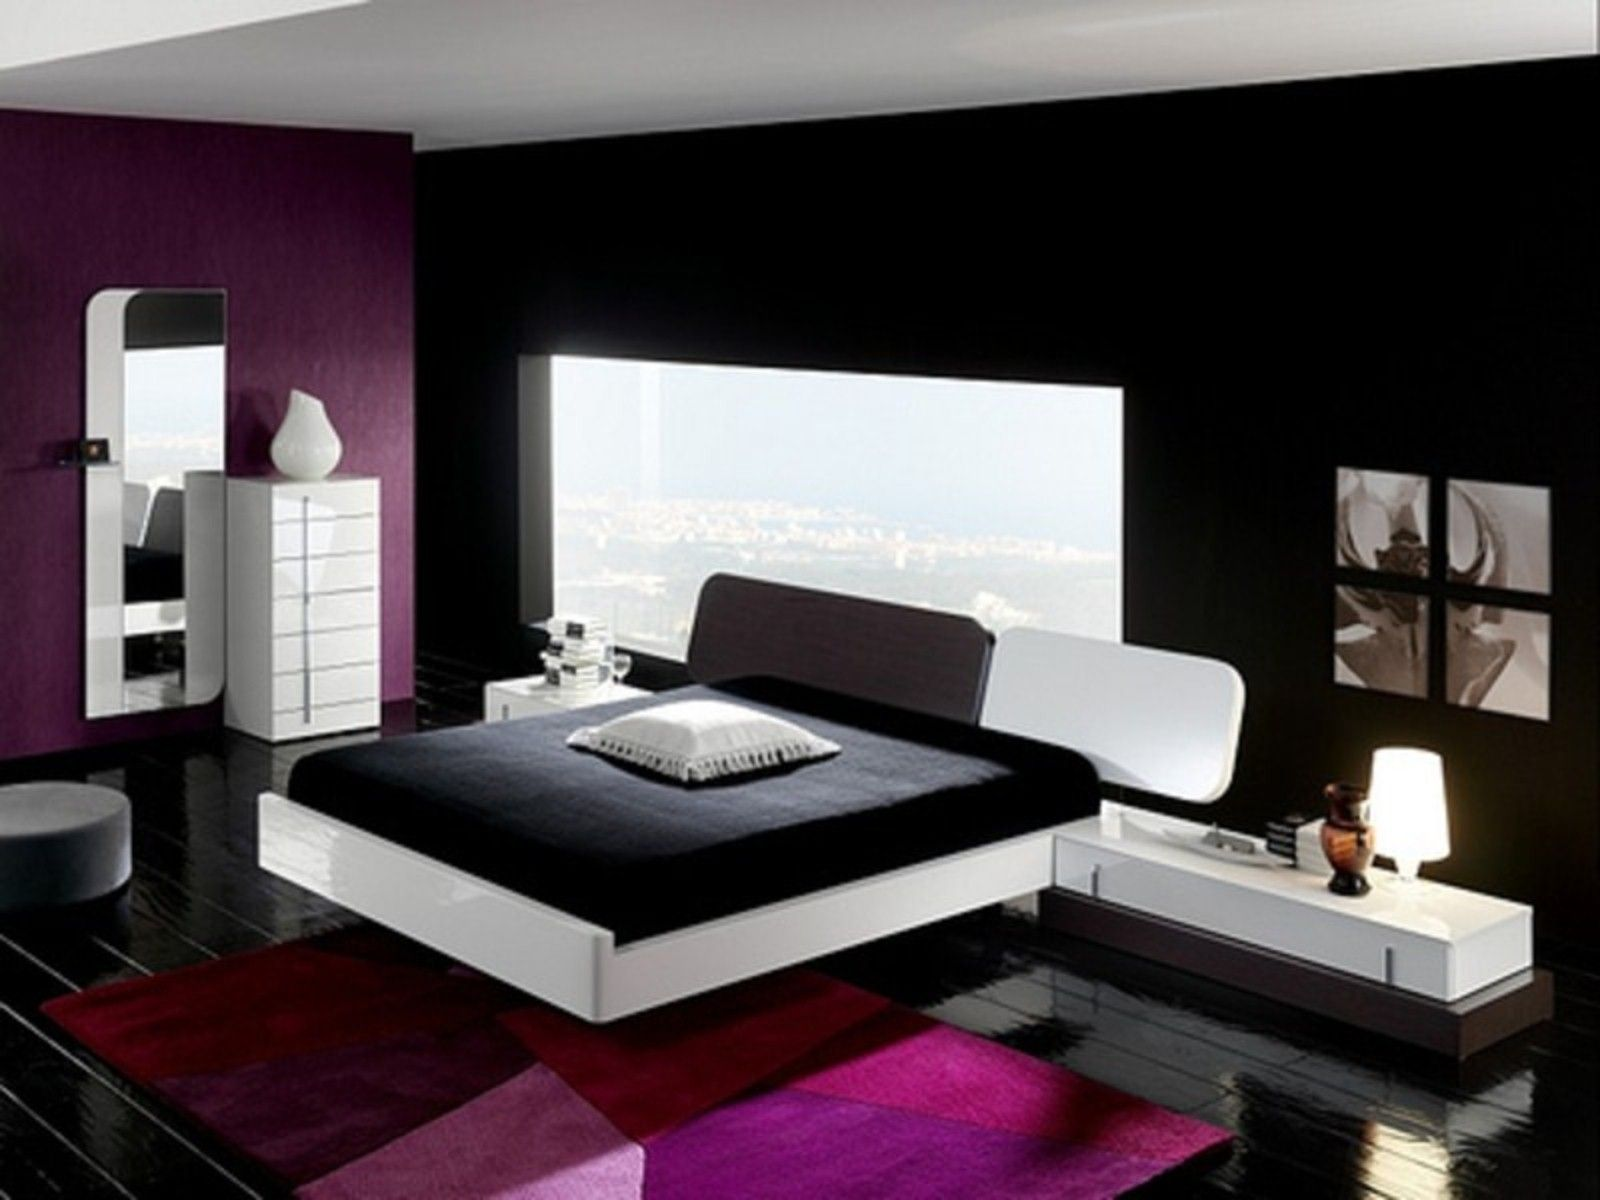 minimalist apartment bedroom design modern rectangle black bed for excerpt and white living room bedroom - Black And White Interior Design Bedroom 2